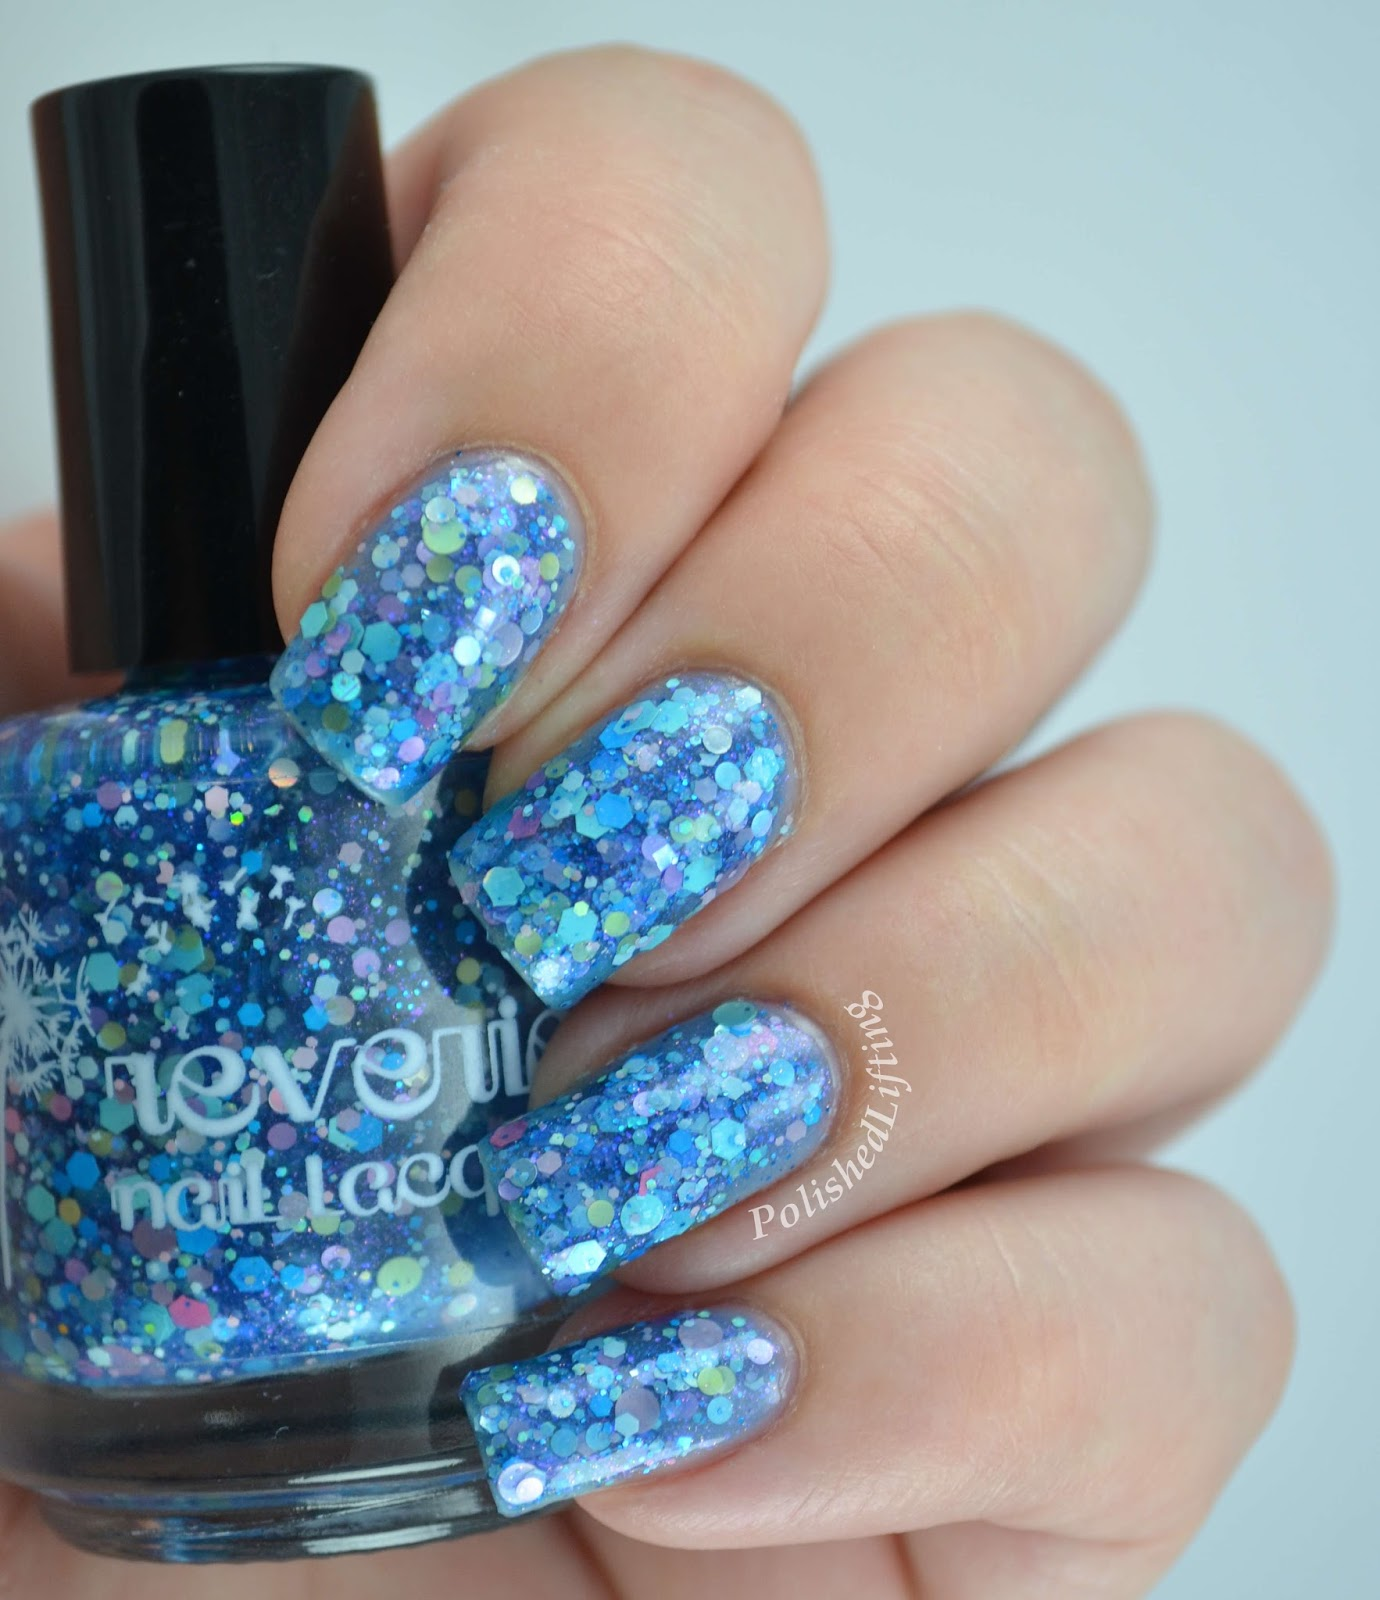 Reverie Nail Lacquer Daydream